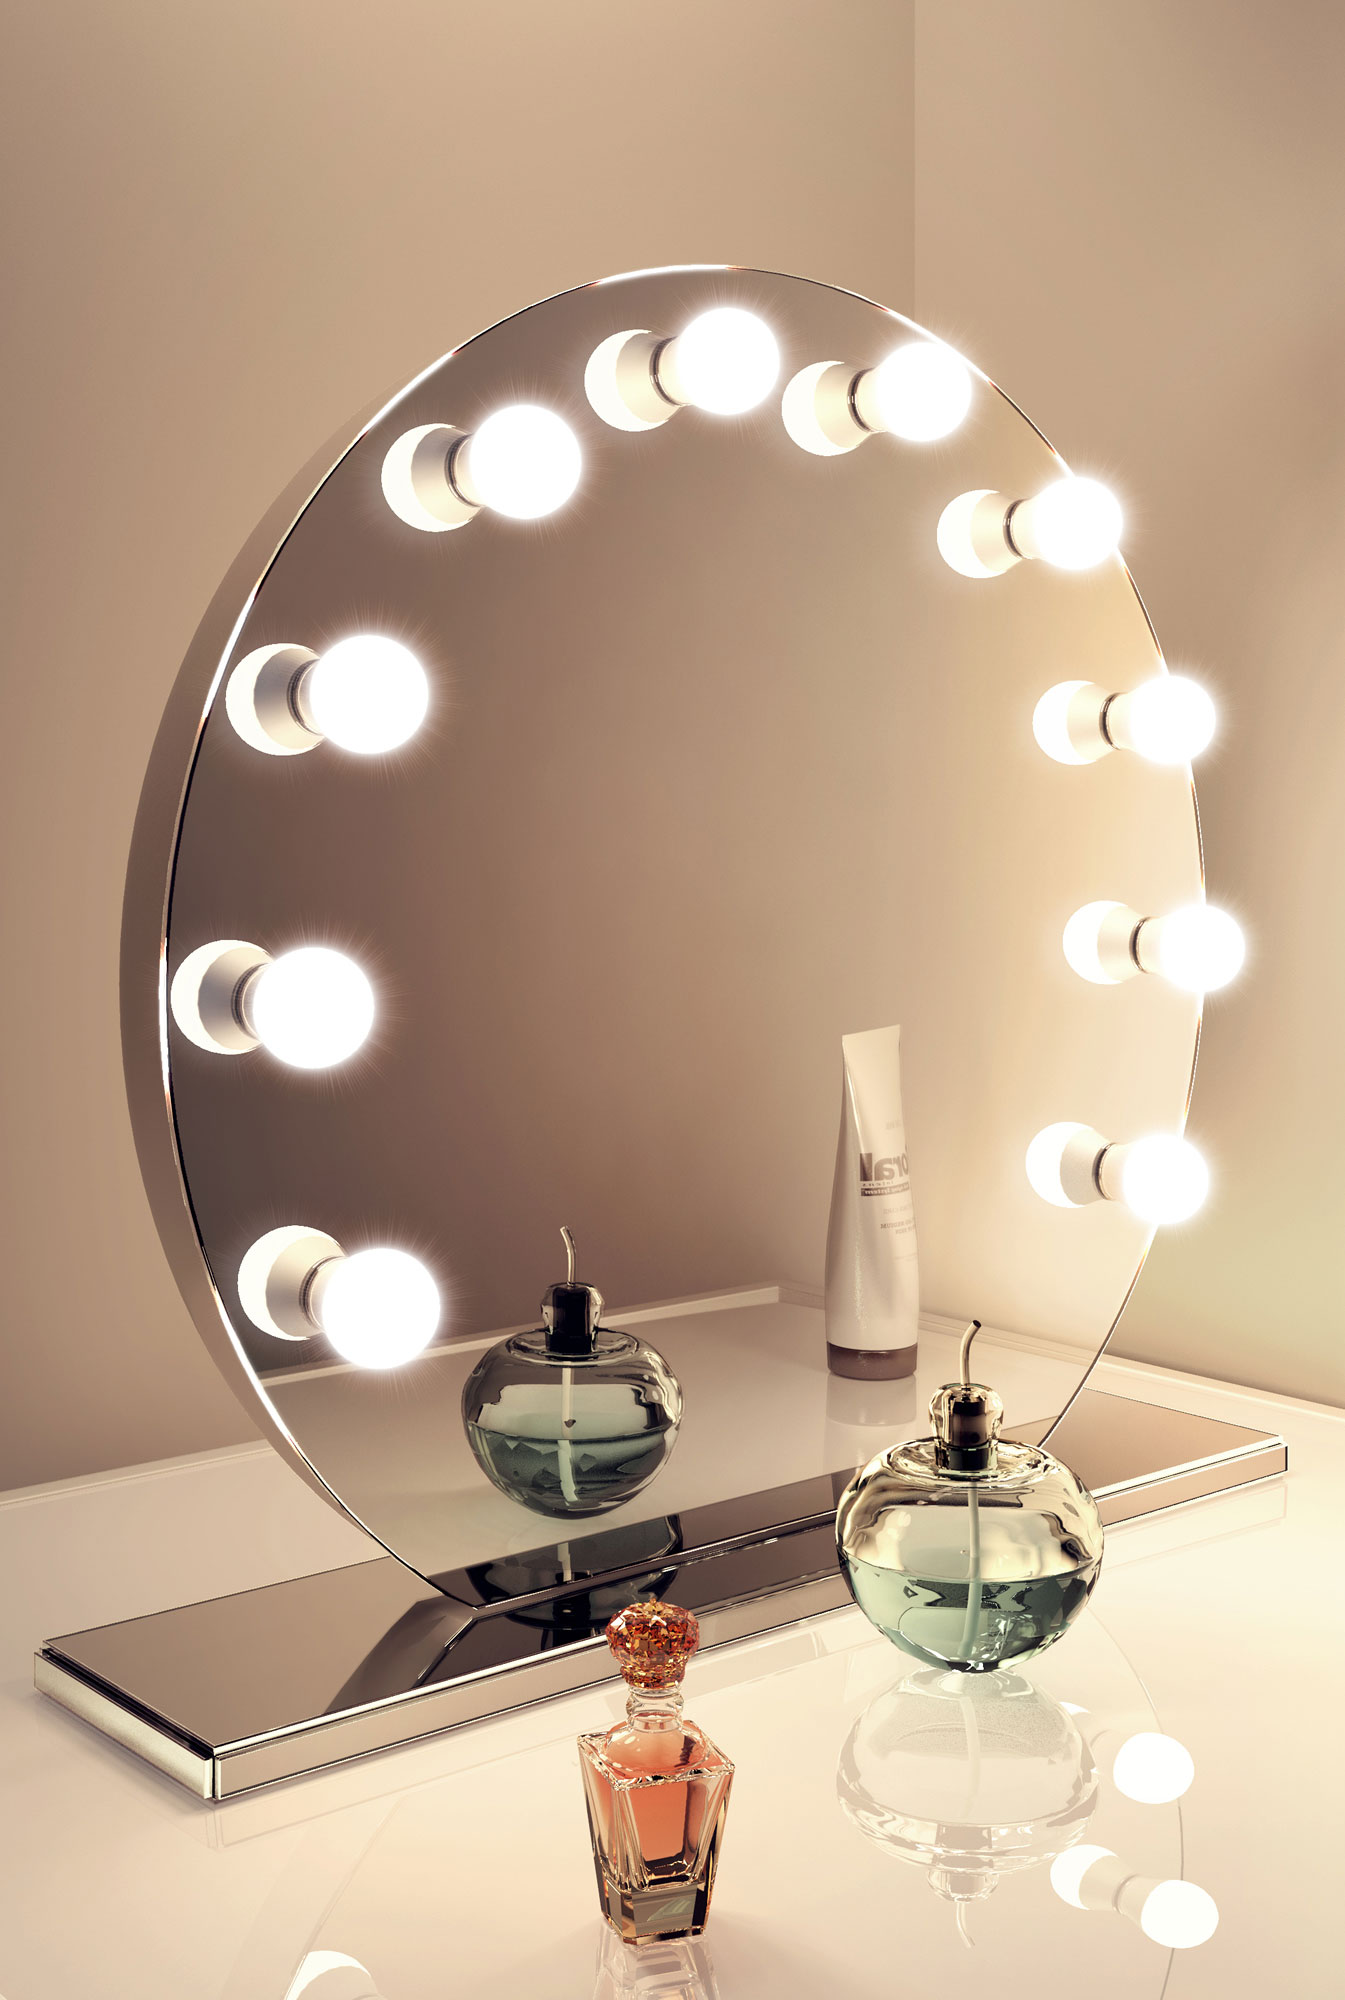 mirror finish hollywood make up mirror with cool white led lamps k251cw ebay. Black Bedroom Furniture Sets. Home Design Ideas